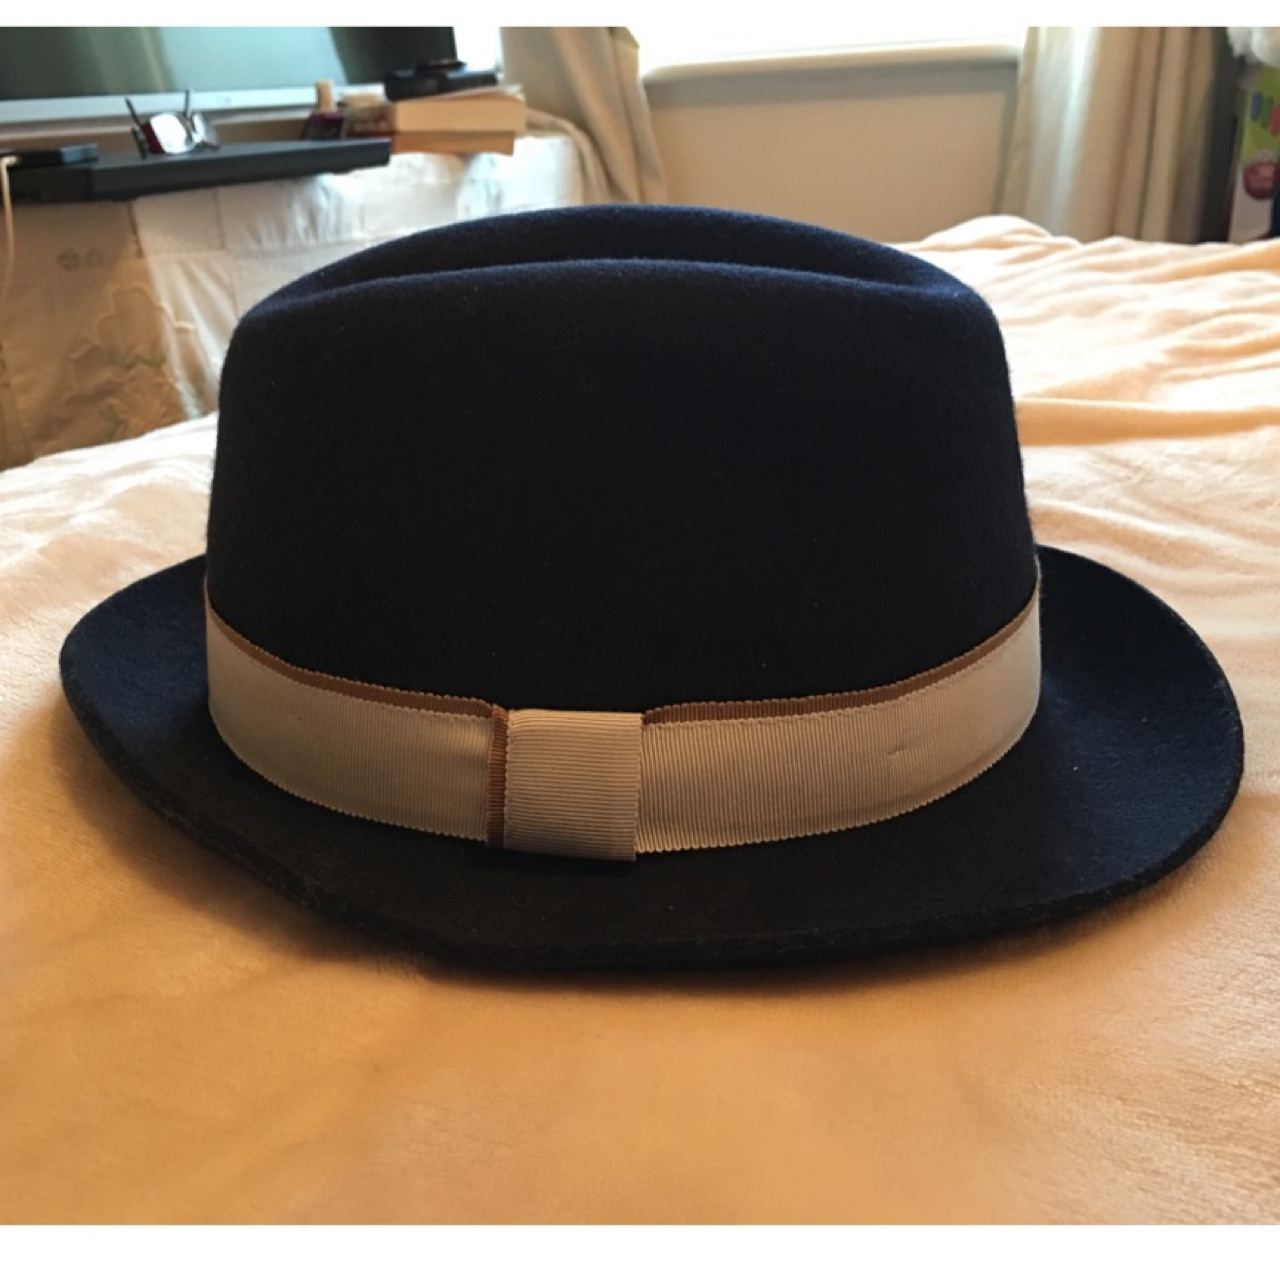 9ac2f83471 LIMITED EDITION - ladies Paul Smith fedora hat in Navy Blue. - Depop